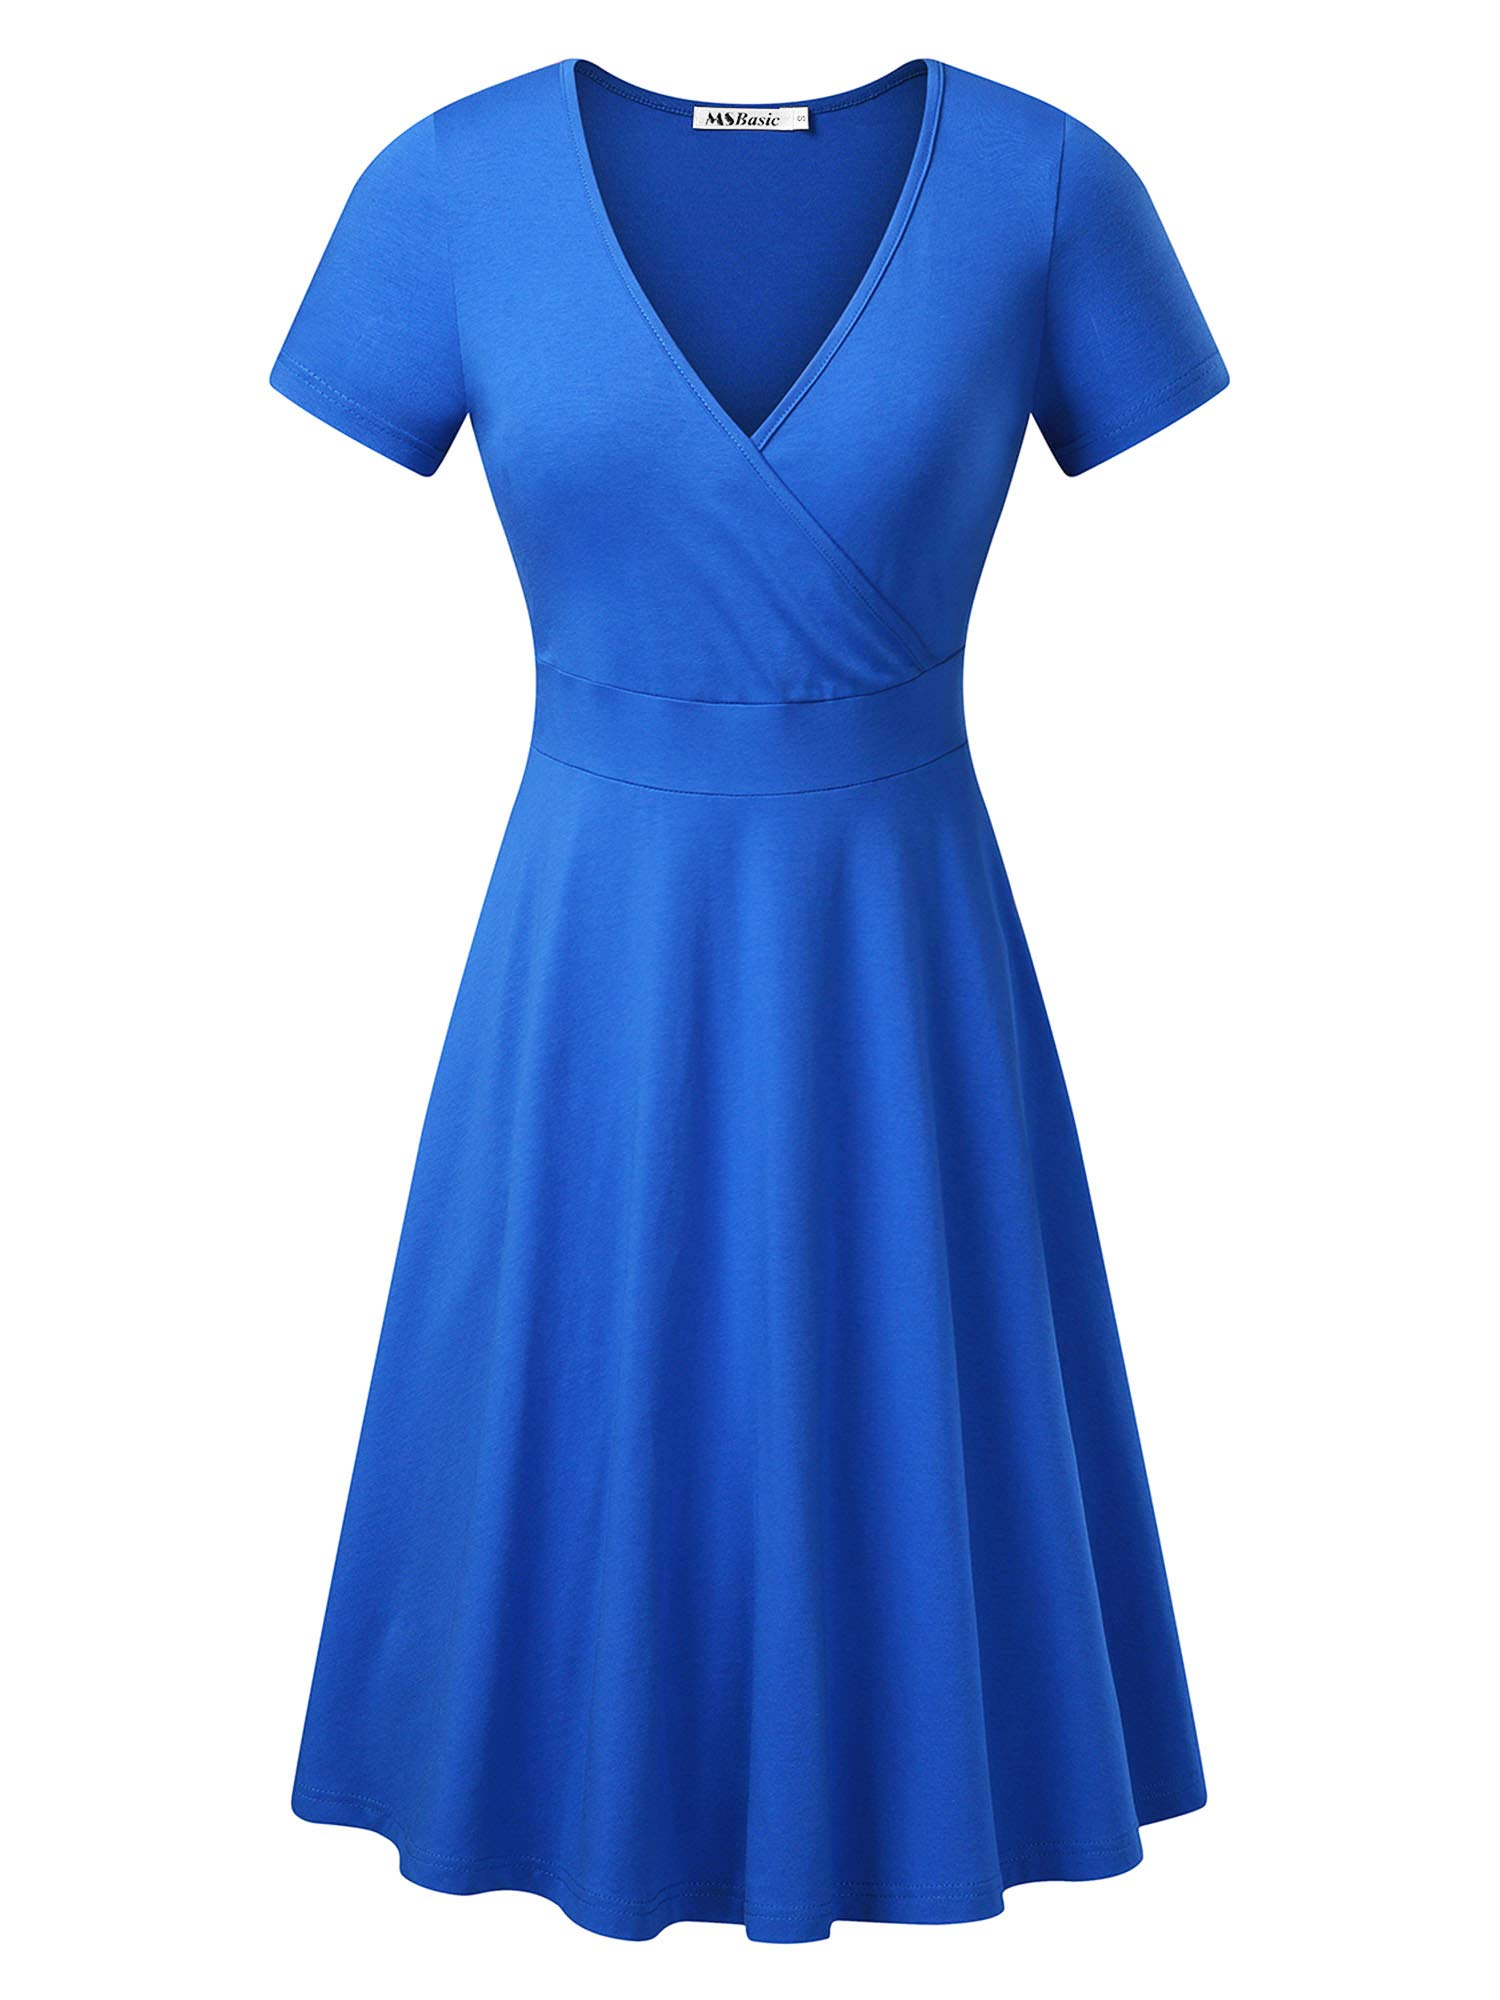 Available at Amazon: MSBASIC Women's Deep V Neck Short Sleeve Unique Cross Wrap Casual Flared Midi Dress